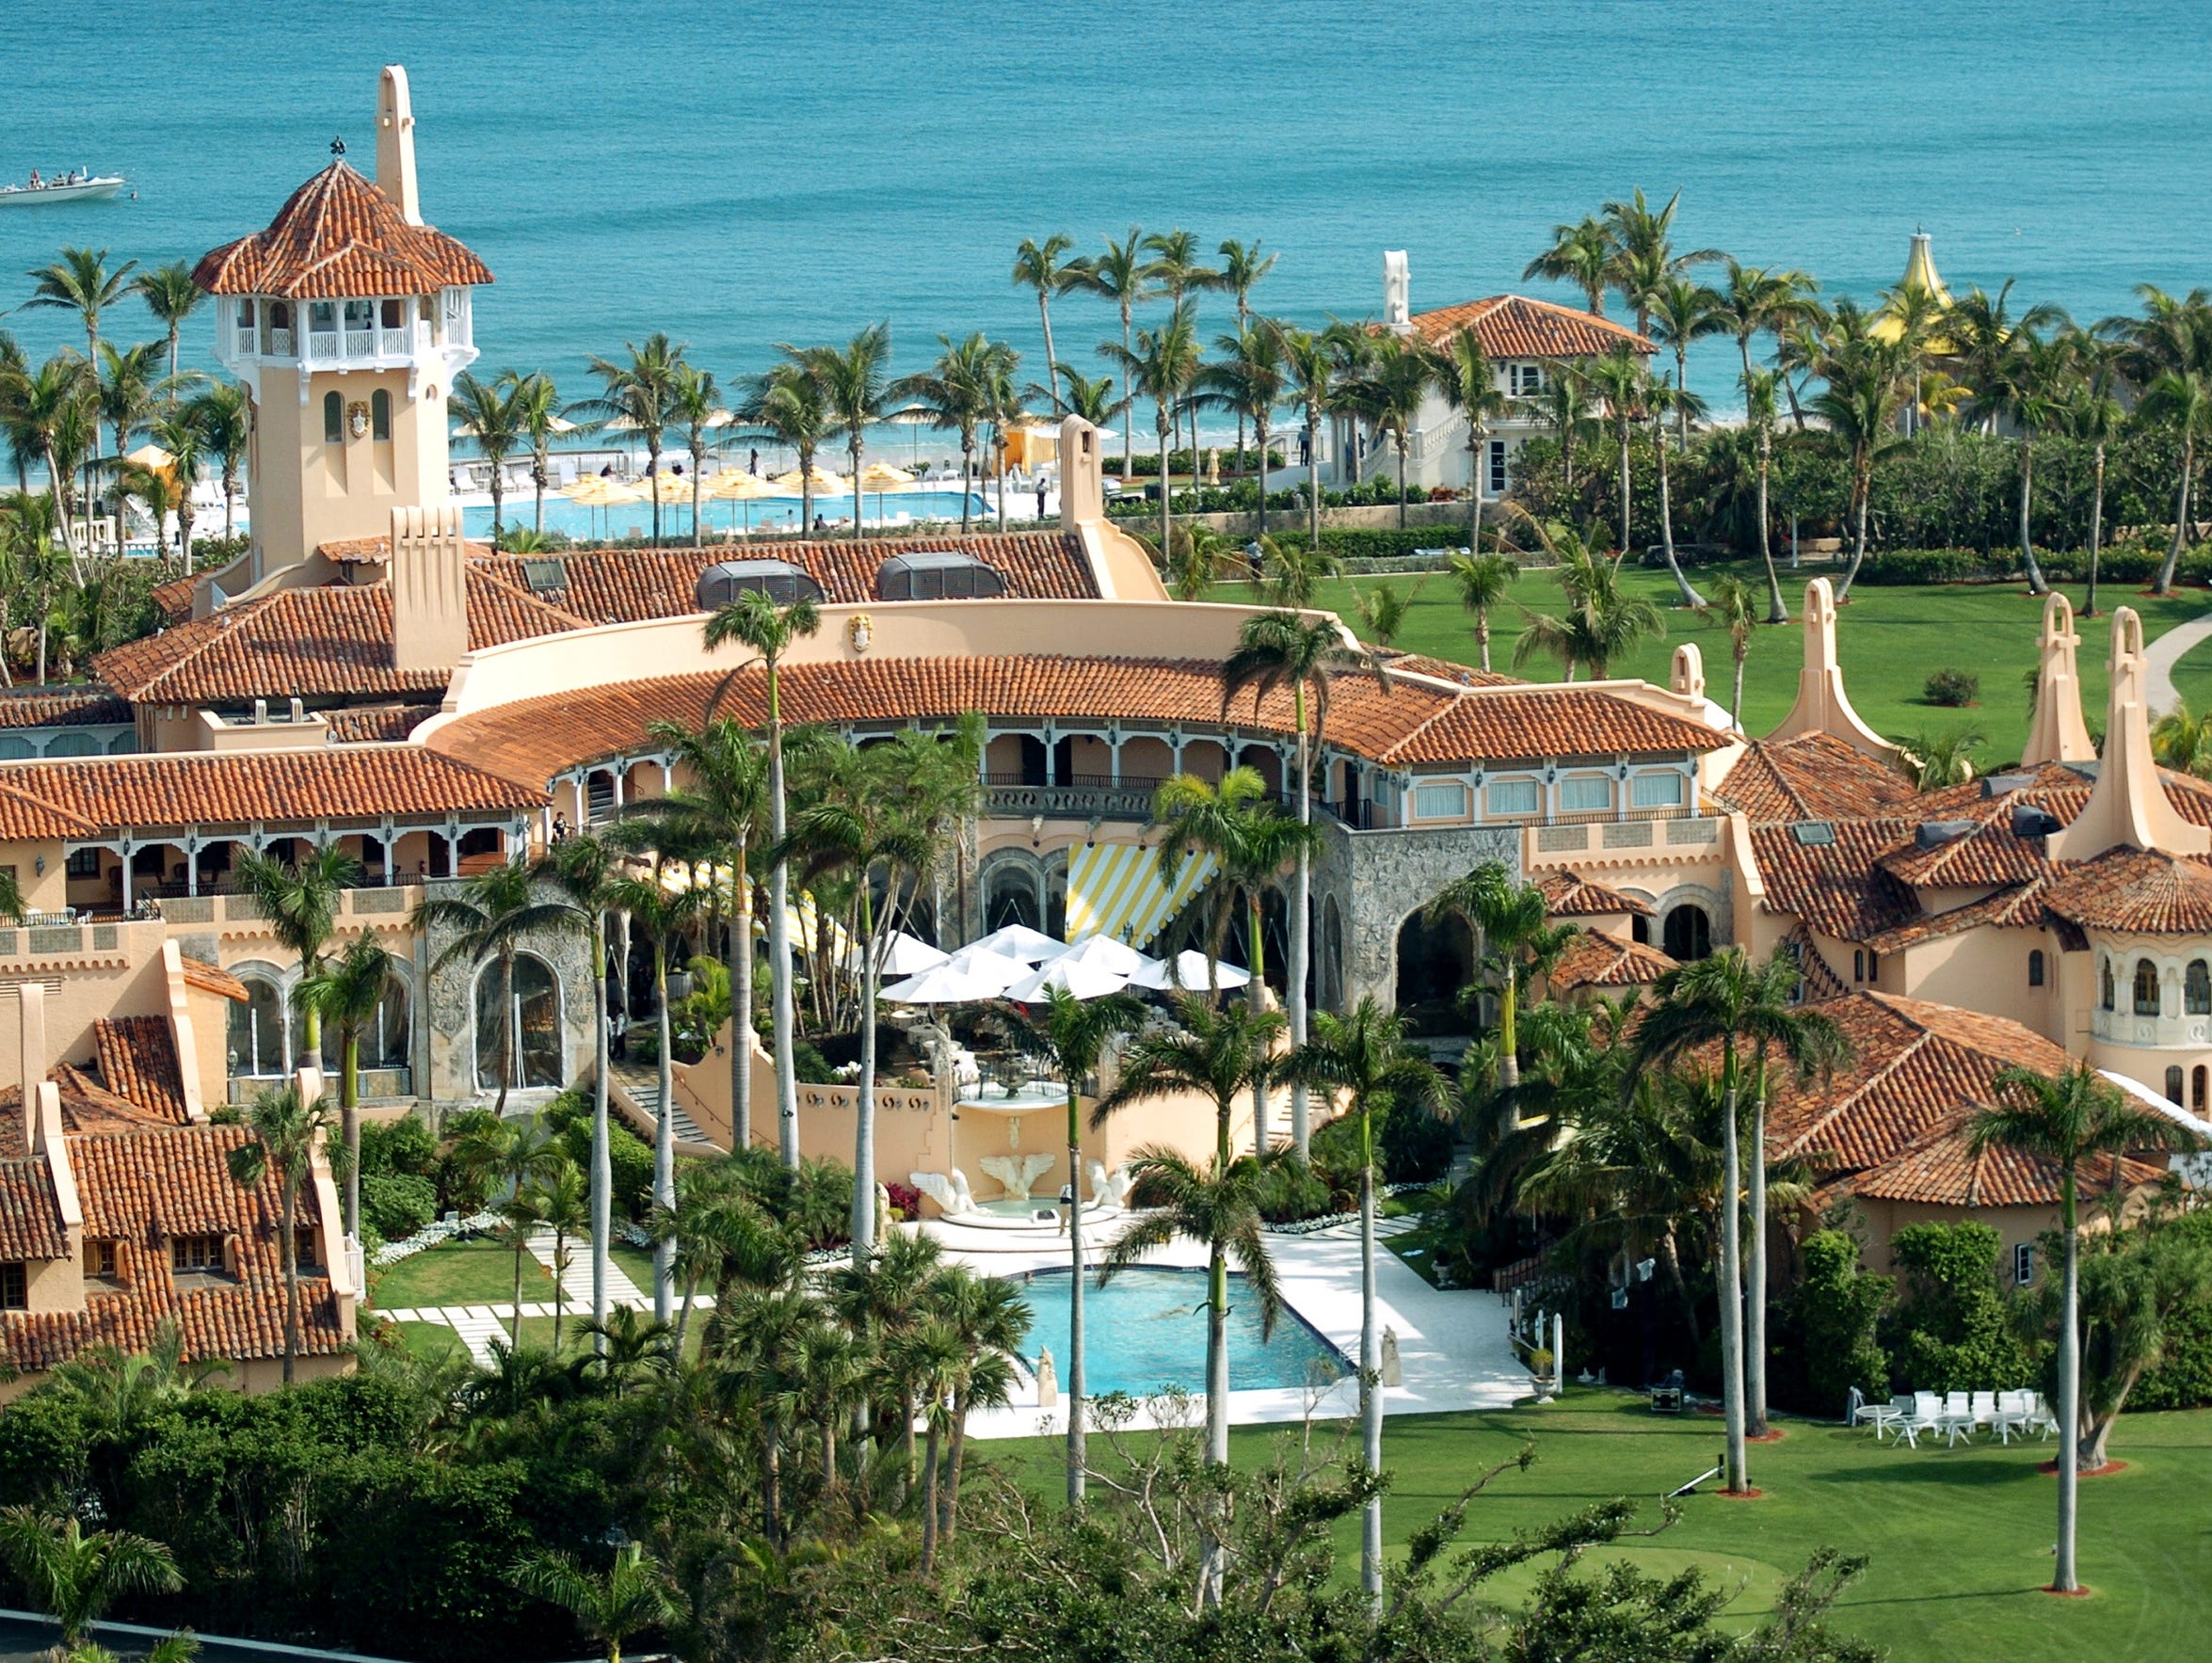 Aerial view of Mar-a-Lago, the oceanfront estate of